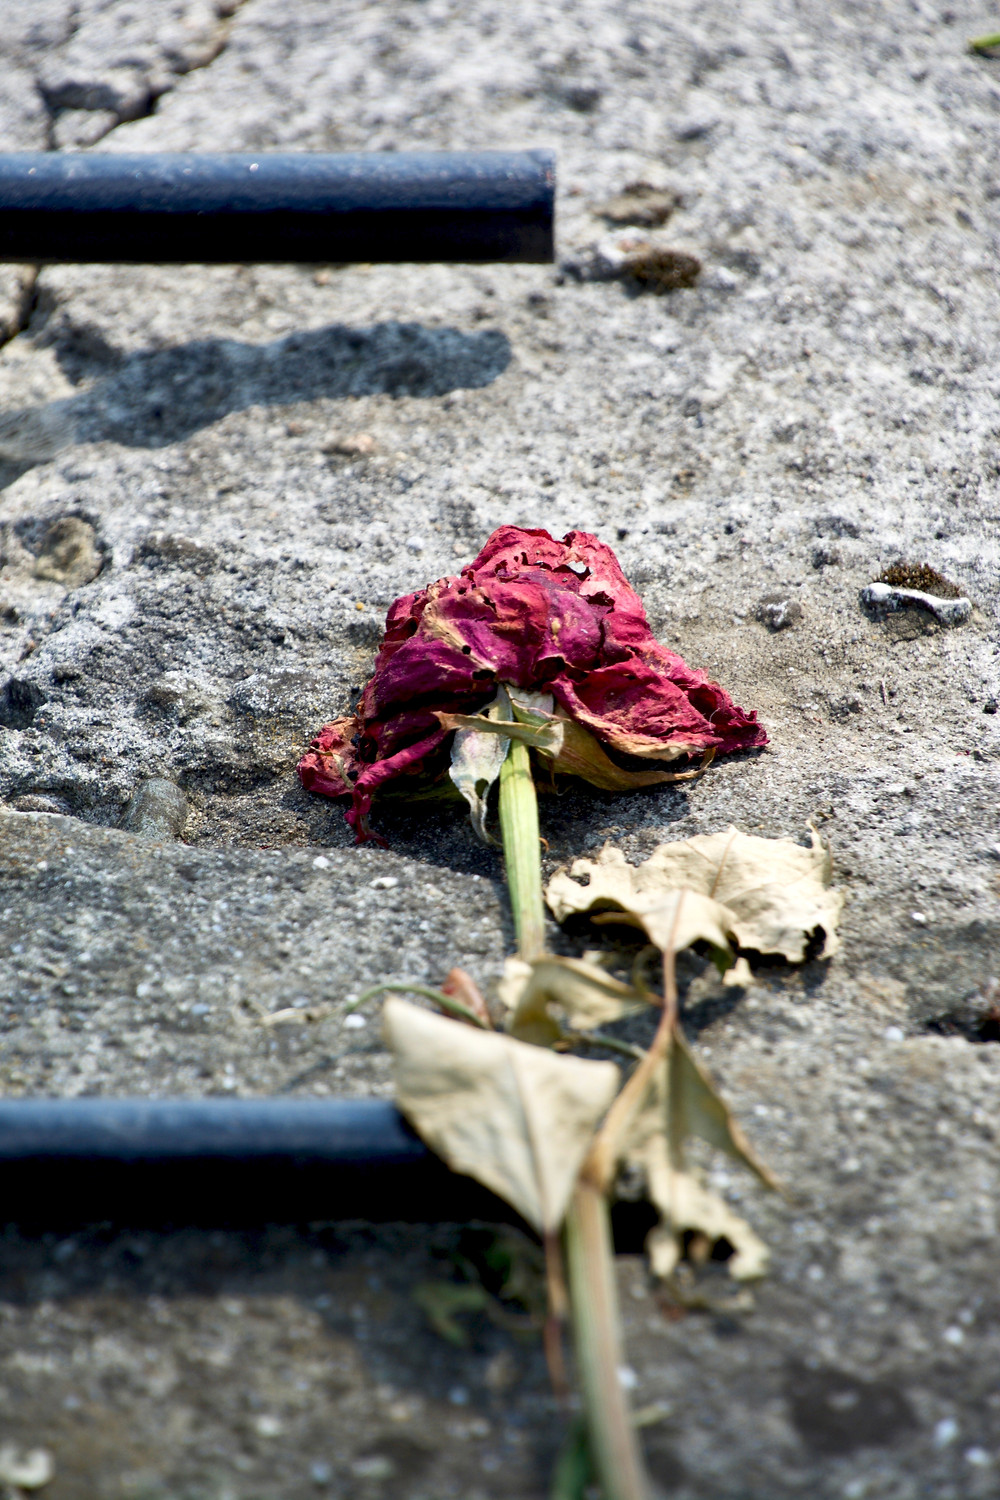 A wilted rose on concrete left behind by travelers at Auschwitz in Poland